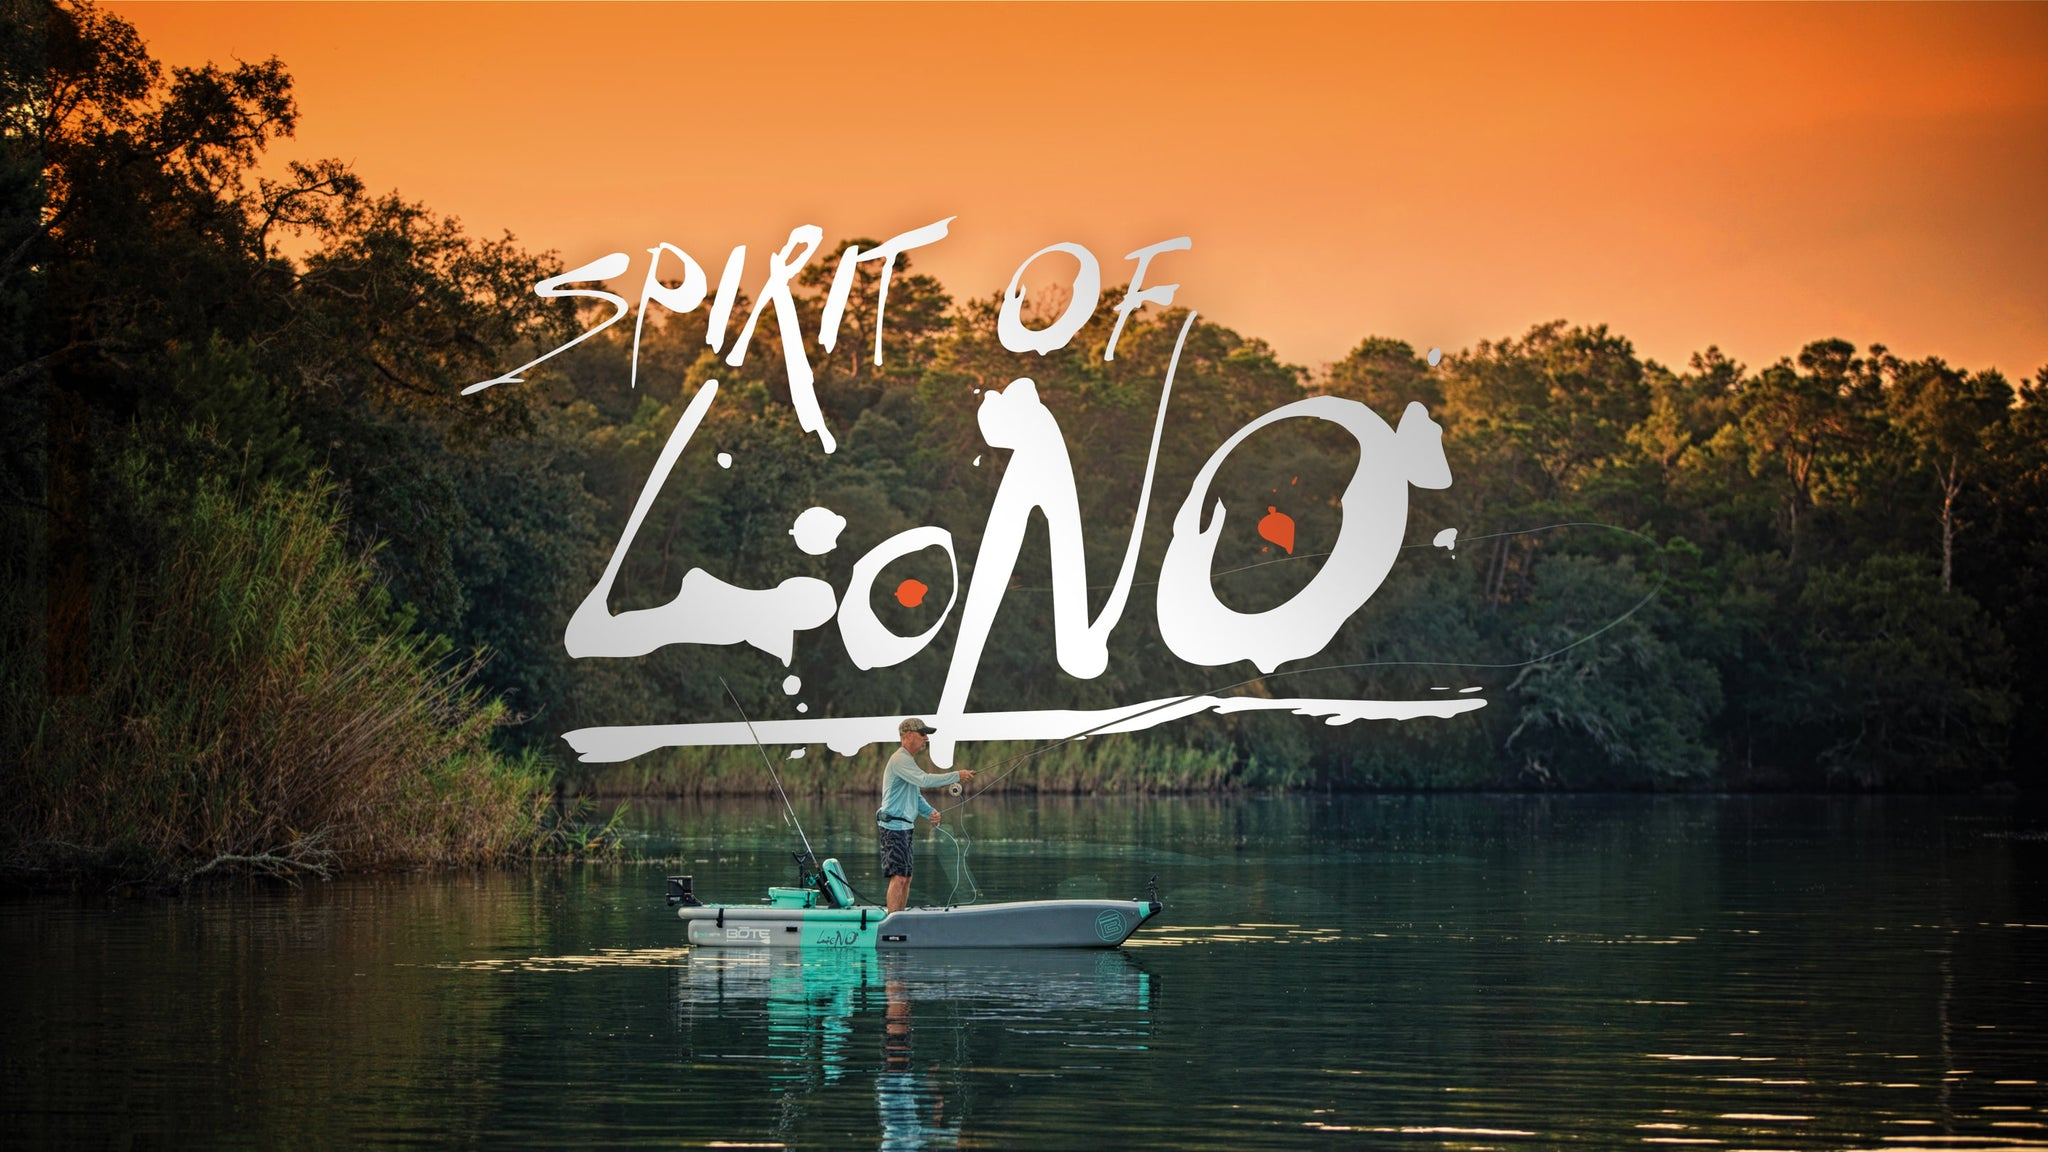 SPIRIT OF LONO